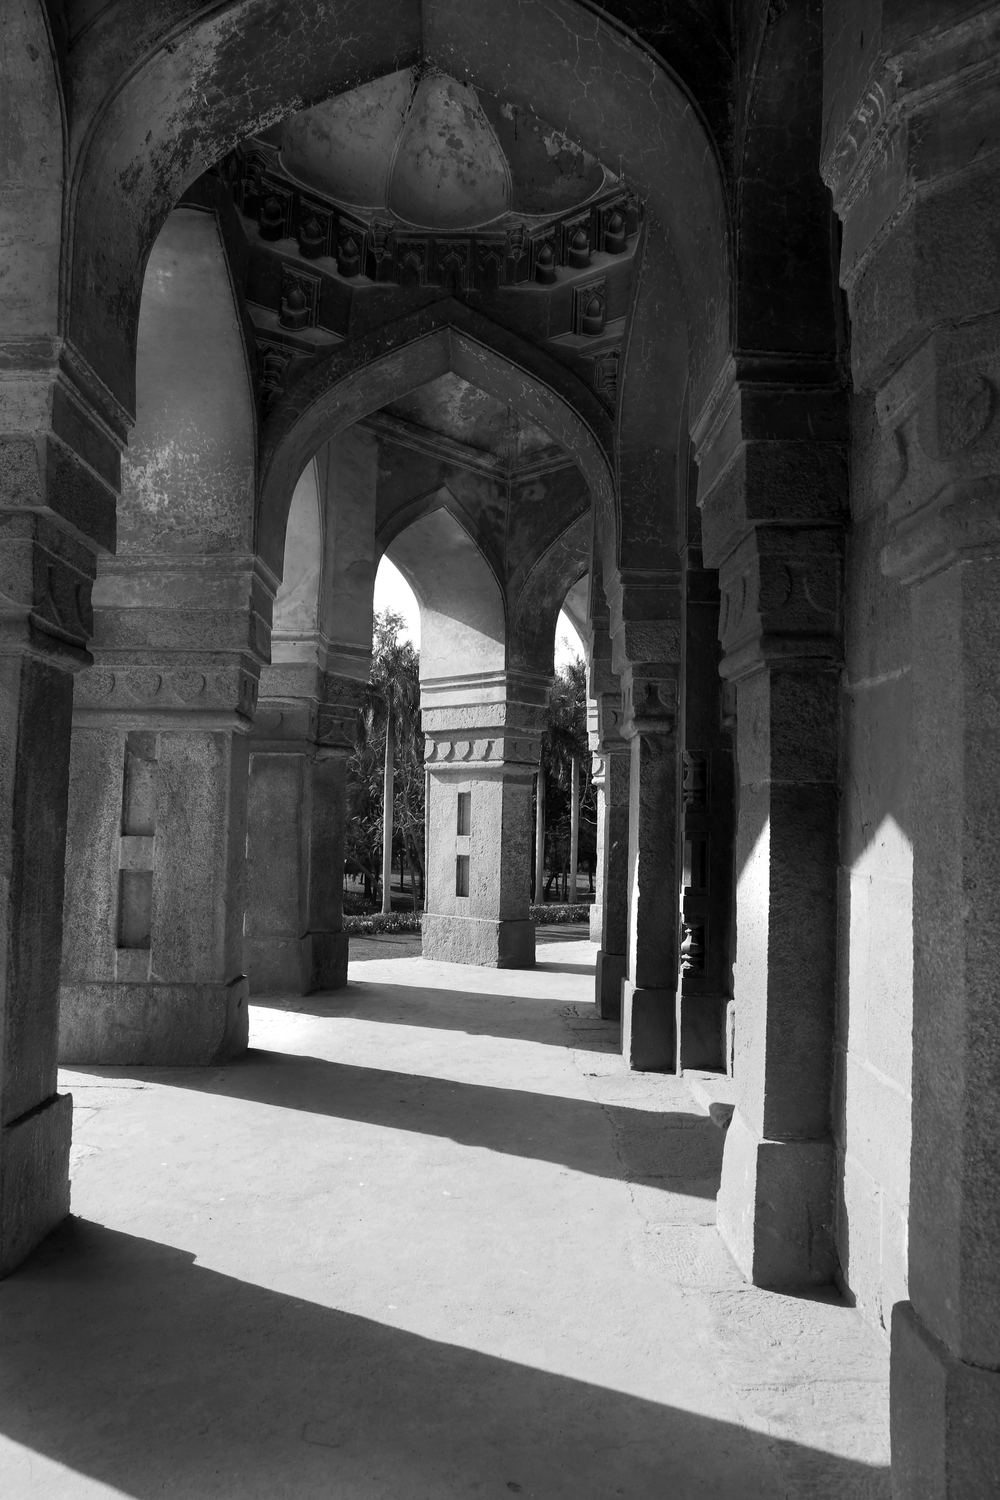 Shadows in Lodhi Gardens